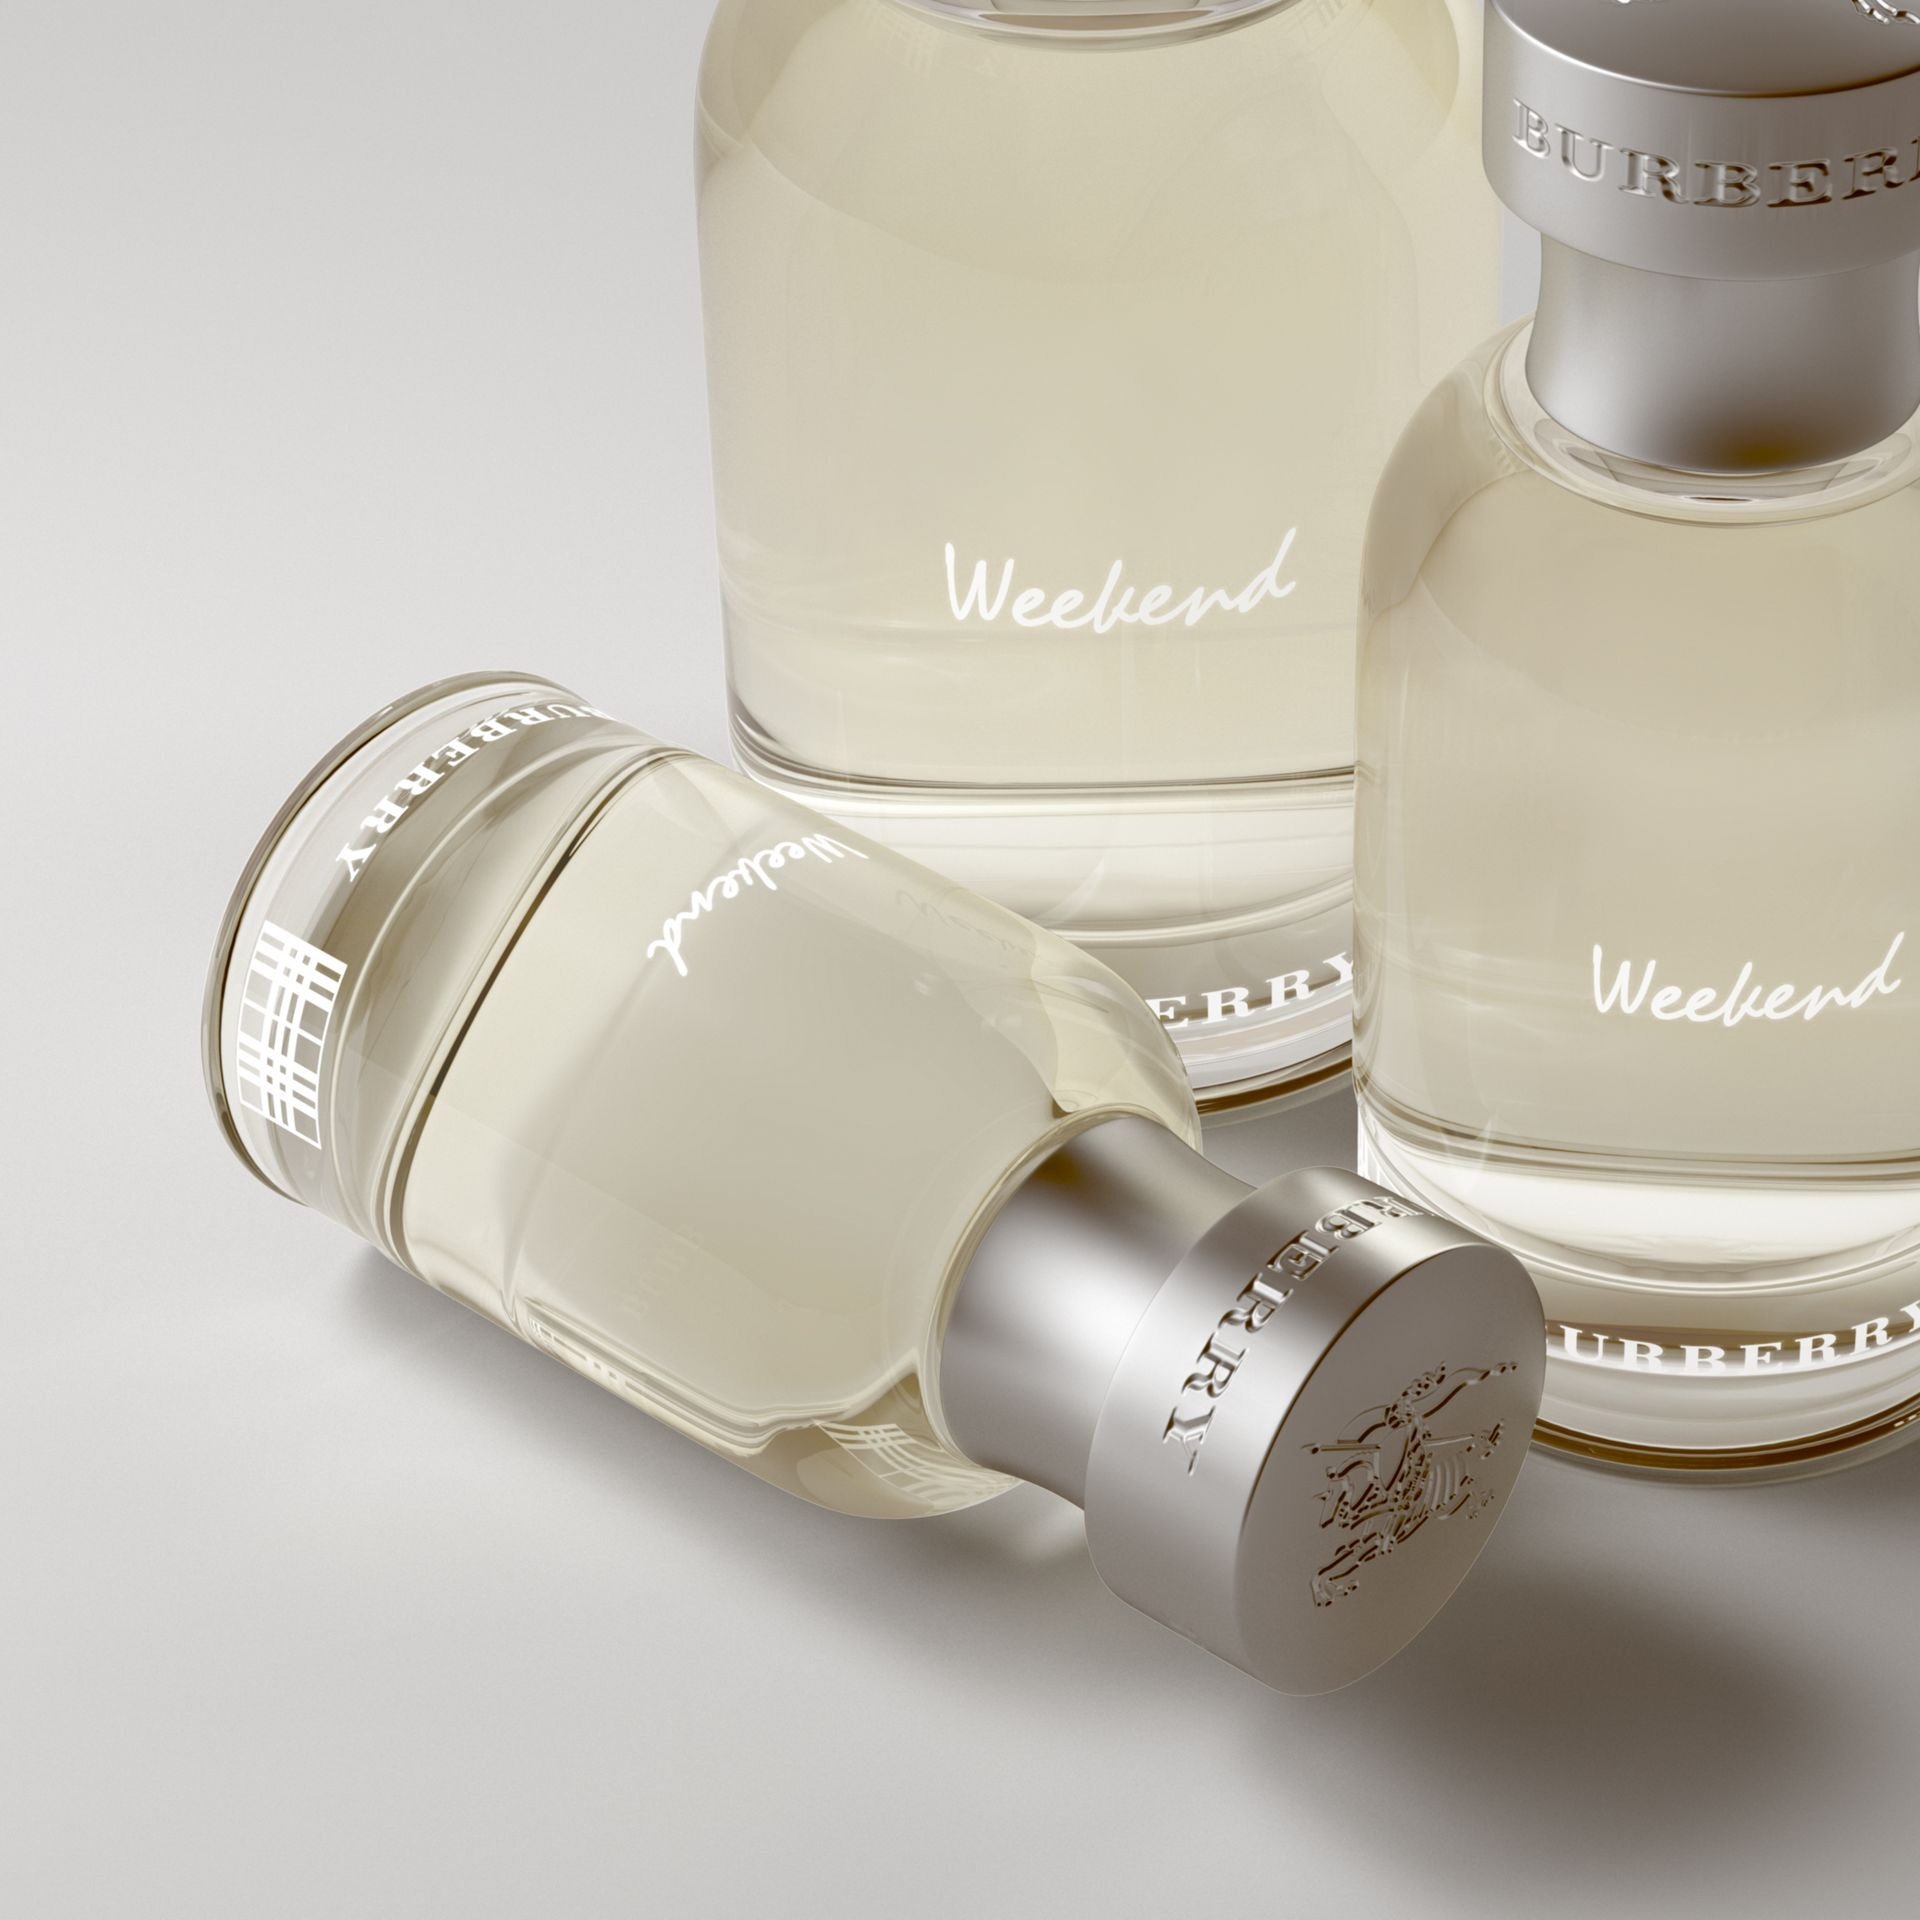 Burberry Weekend For Men Eau De Toilette 30ml - Men | Burberry - gallery image 2